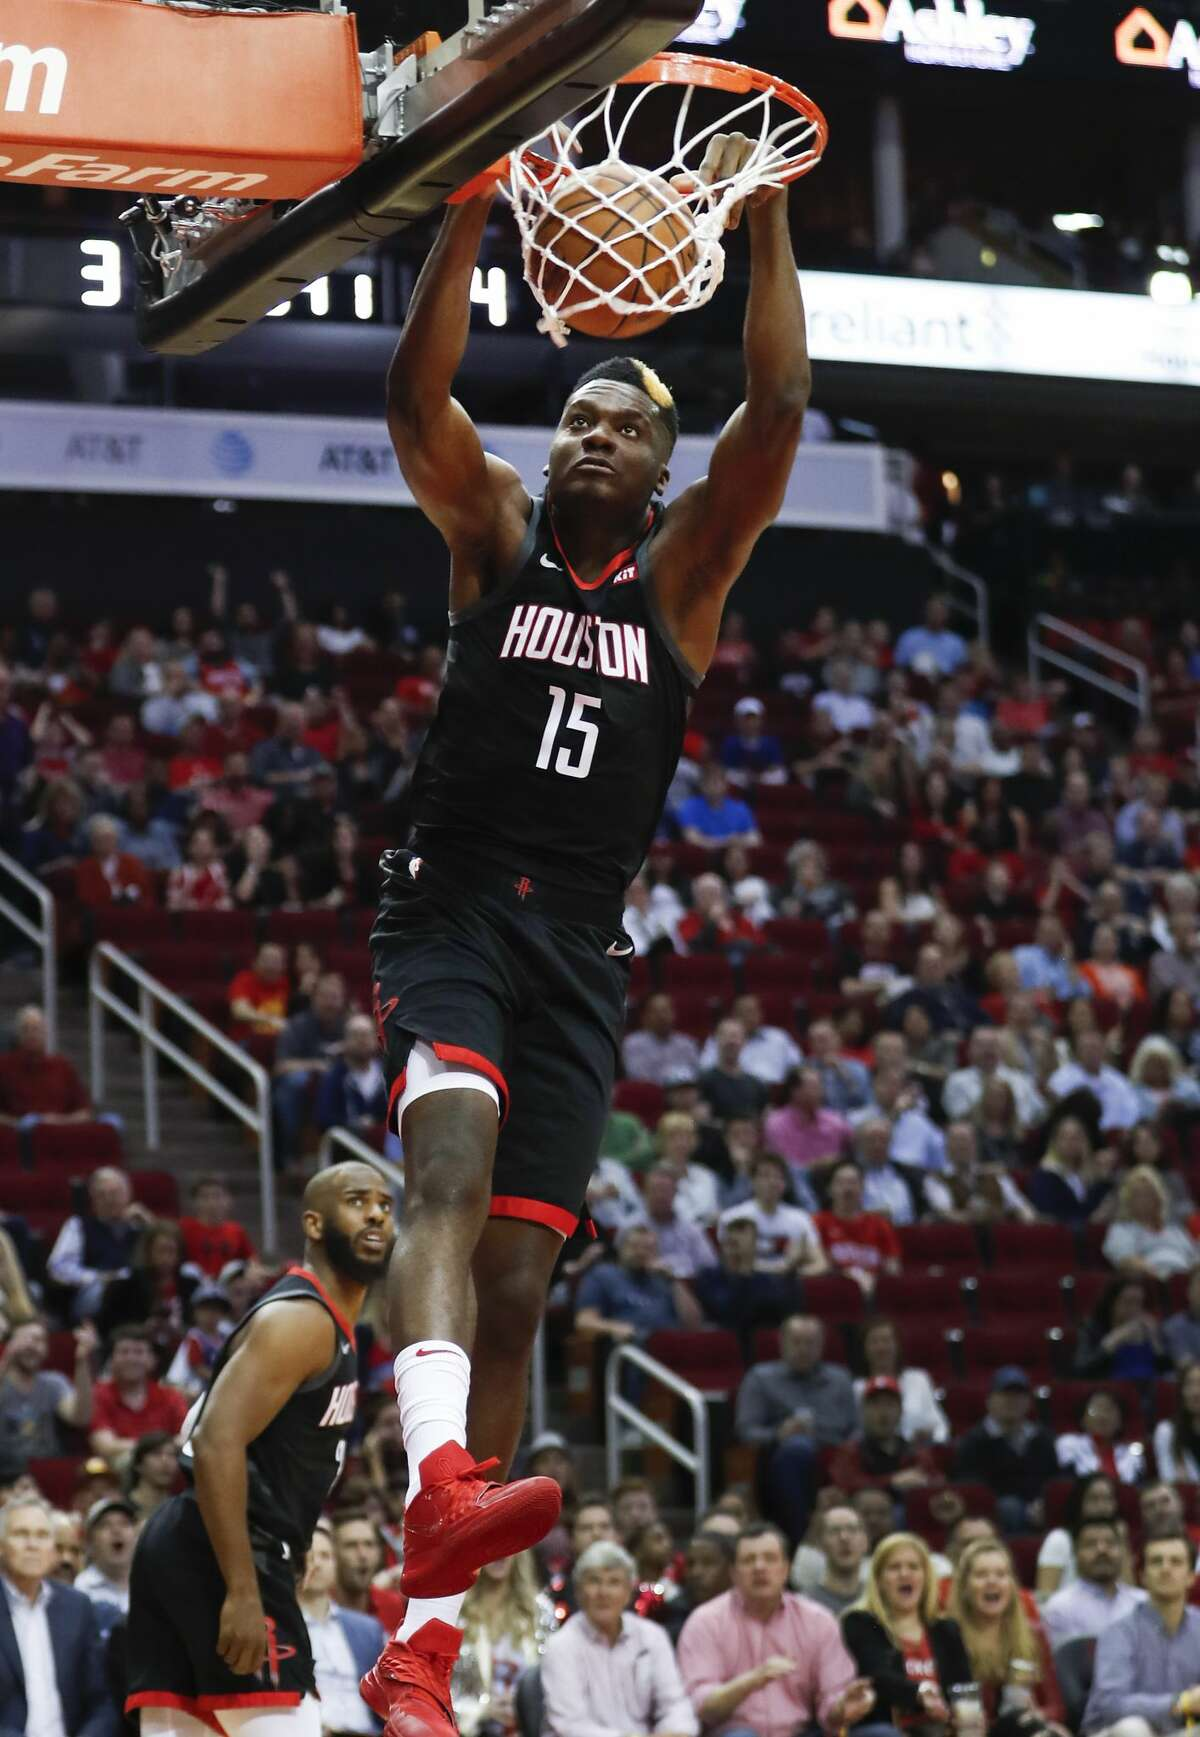 Houston Rockets center Clint Capela (15) scores on a break away dunk against the Philadelphia 76ers during the first half of an NBA basketball game at Toyota Center on Friday, March 8, 2019, in Houston.